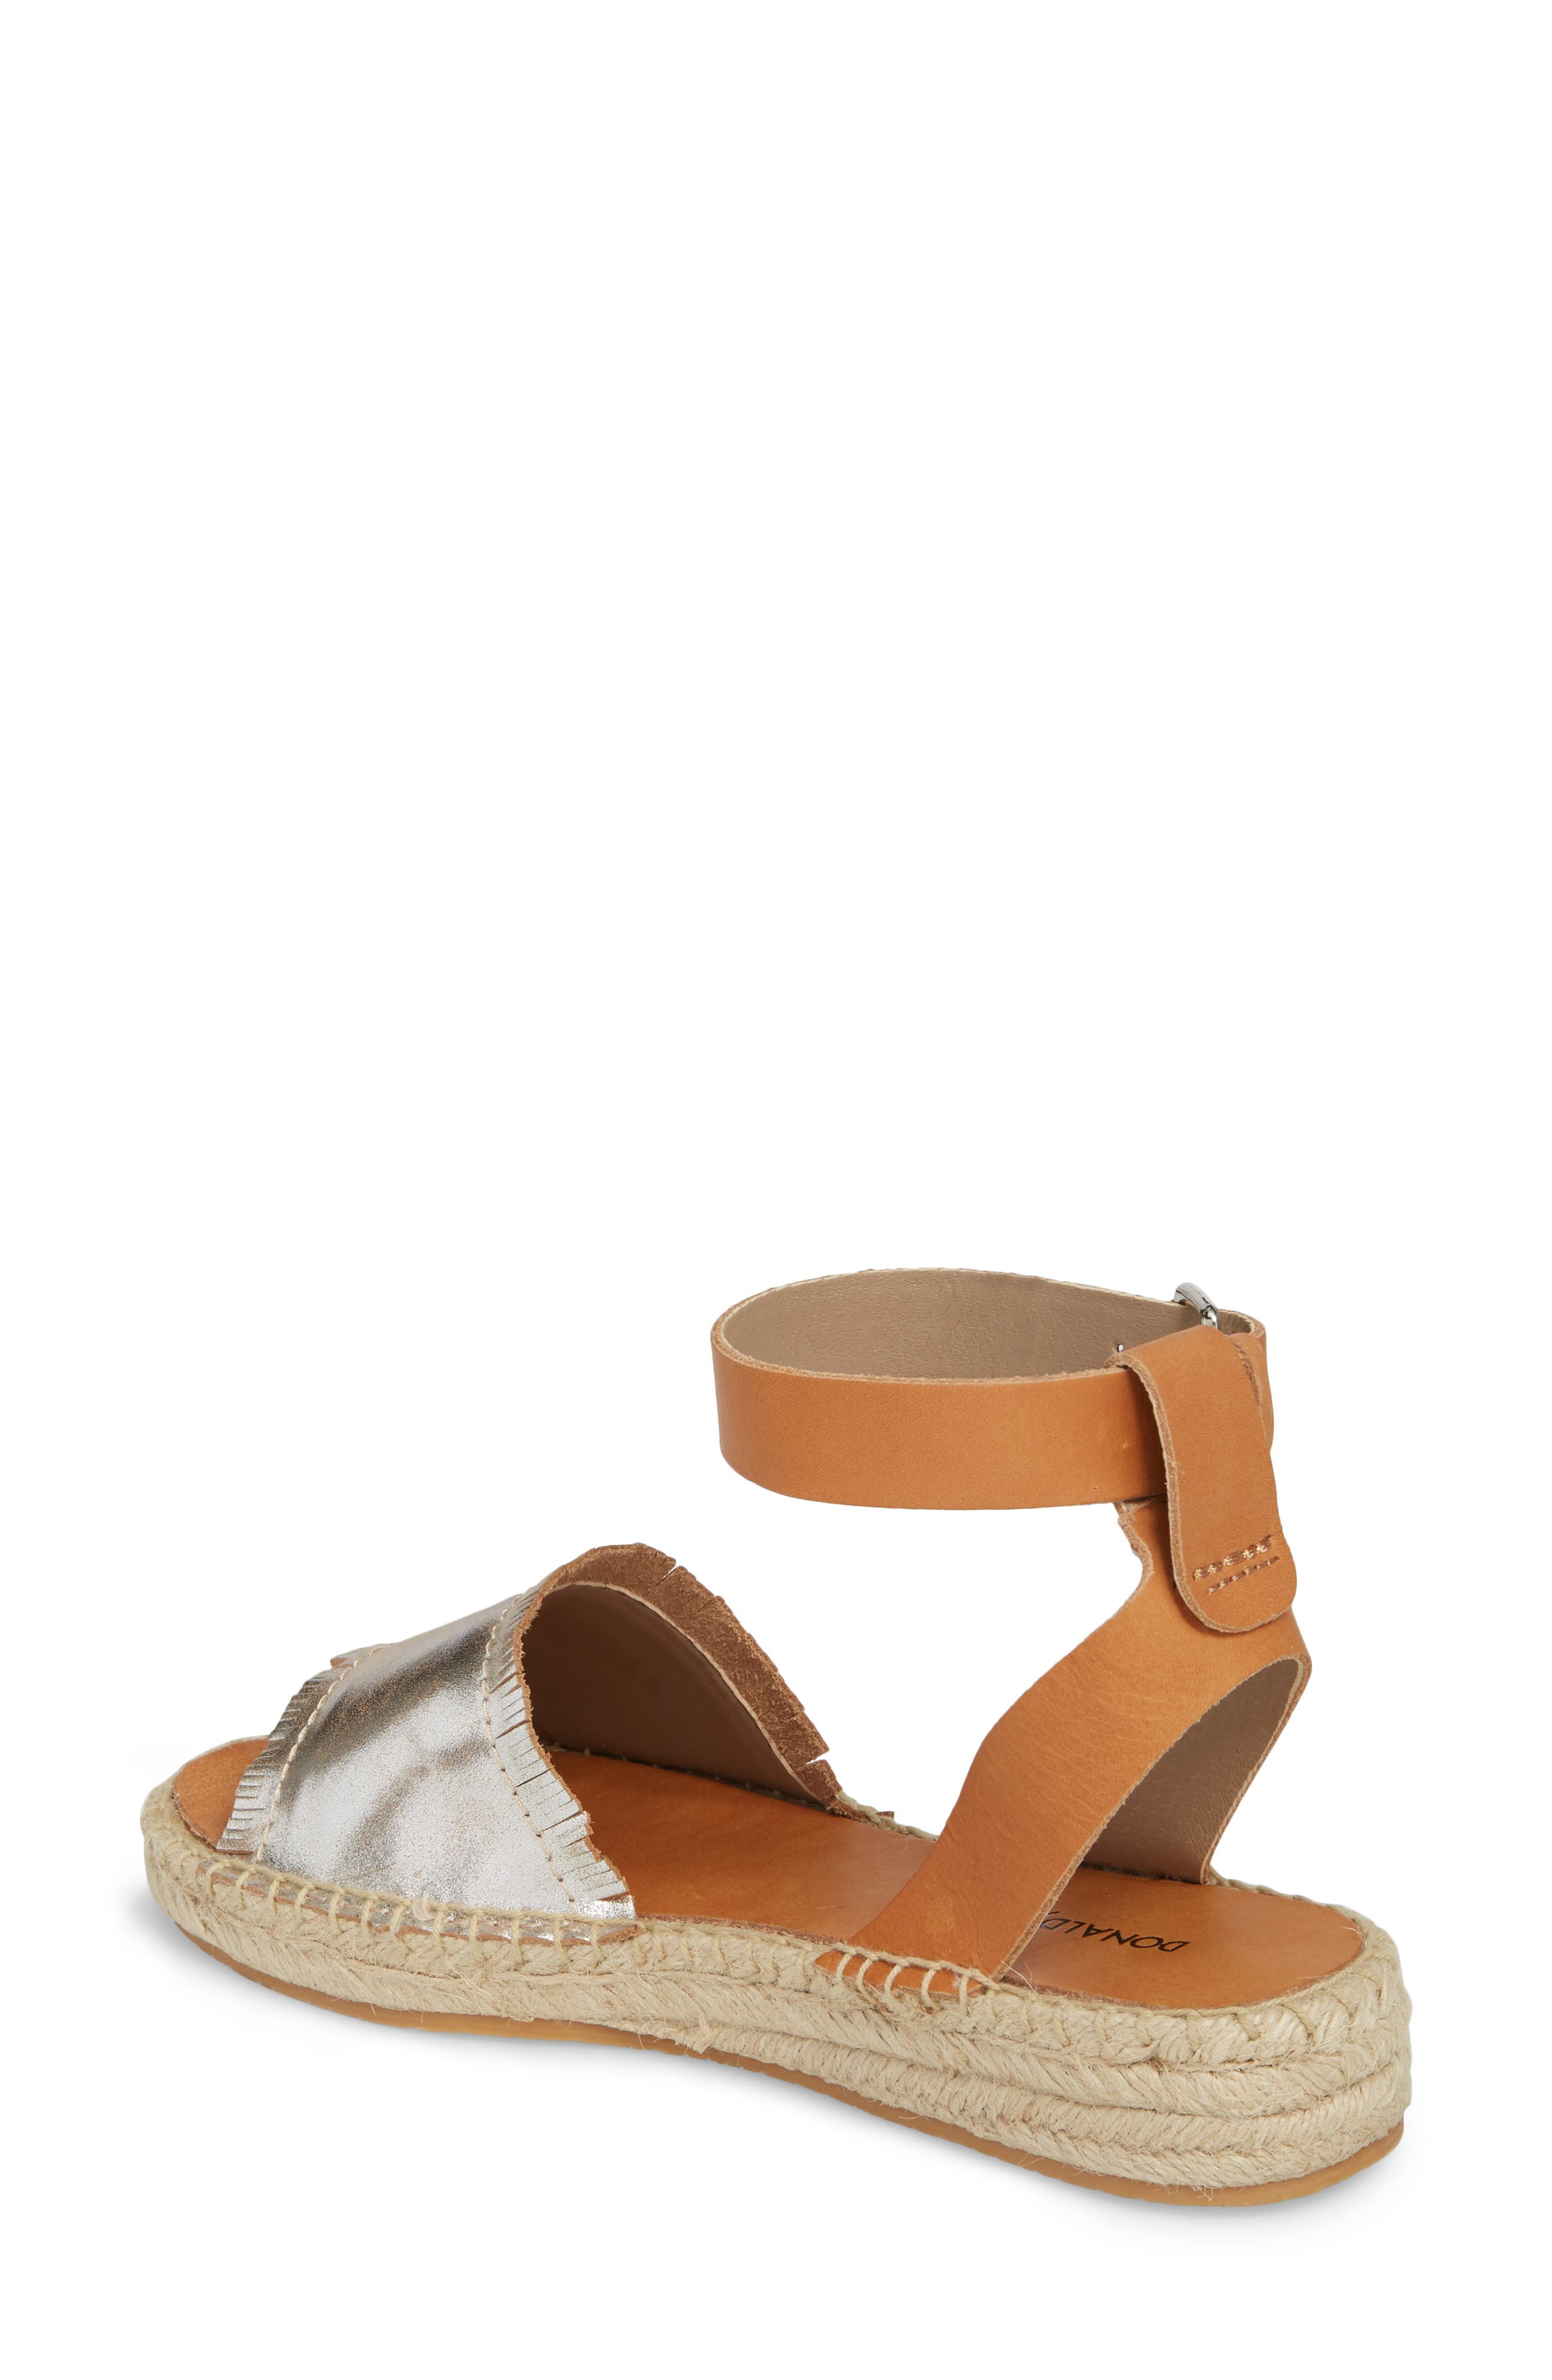 Rowen Espadrille Sandal,                             Alternate thumbnail 2, color,                             Silver Leather